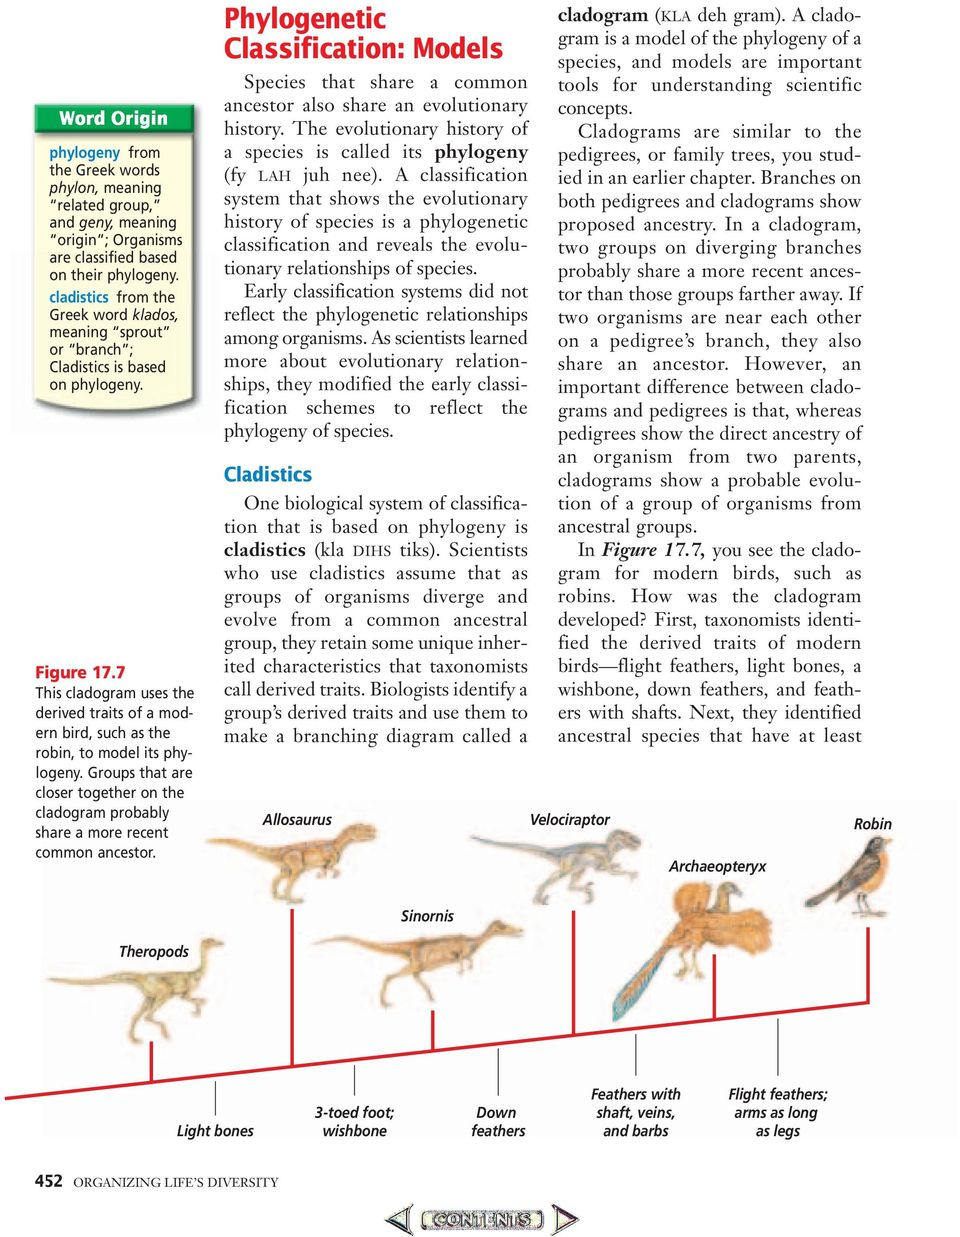 7 This cladogram uses the derived traits of a modern bird, such as the robin, to model its phylogeny. Groups that are closer together on the cladogram probably share a more recent common ancestor.